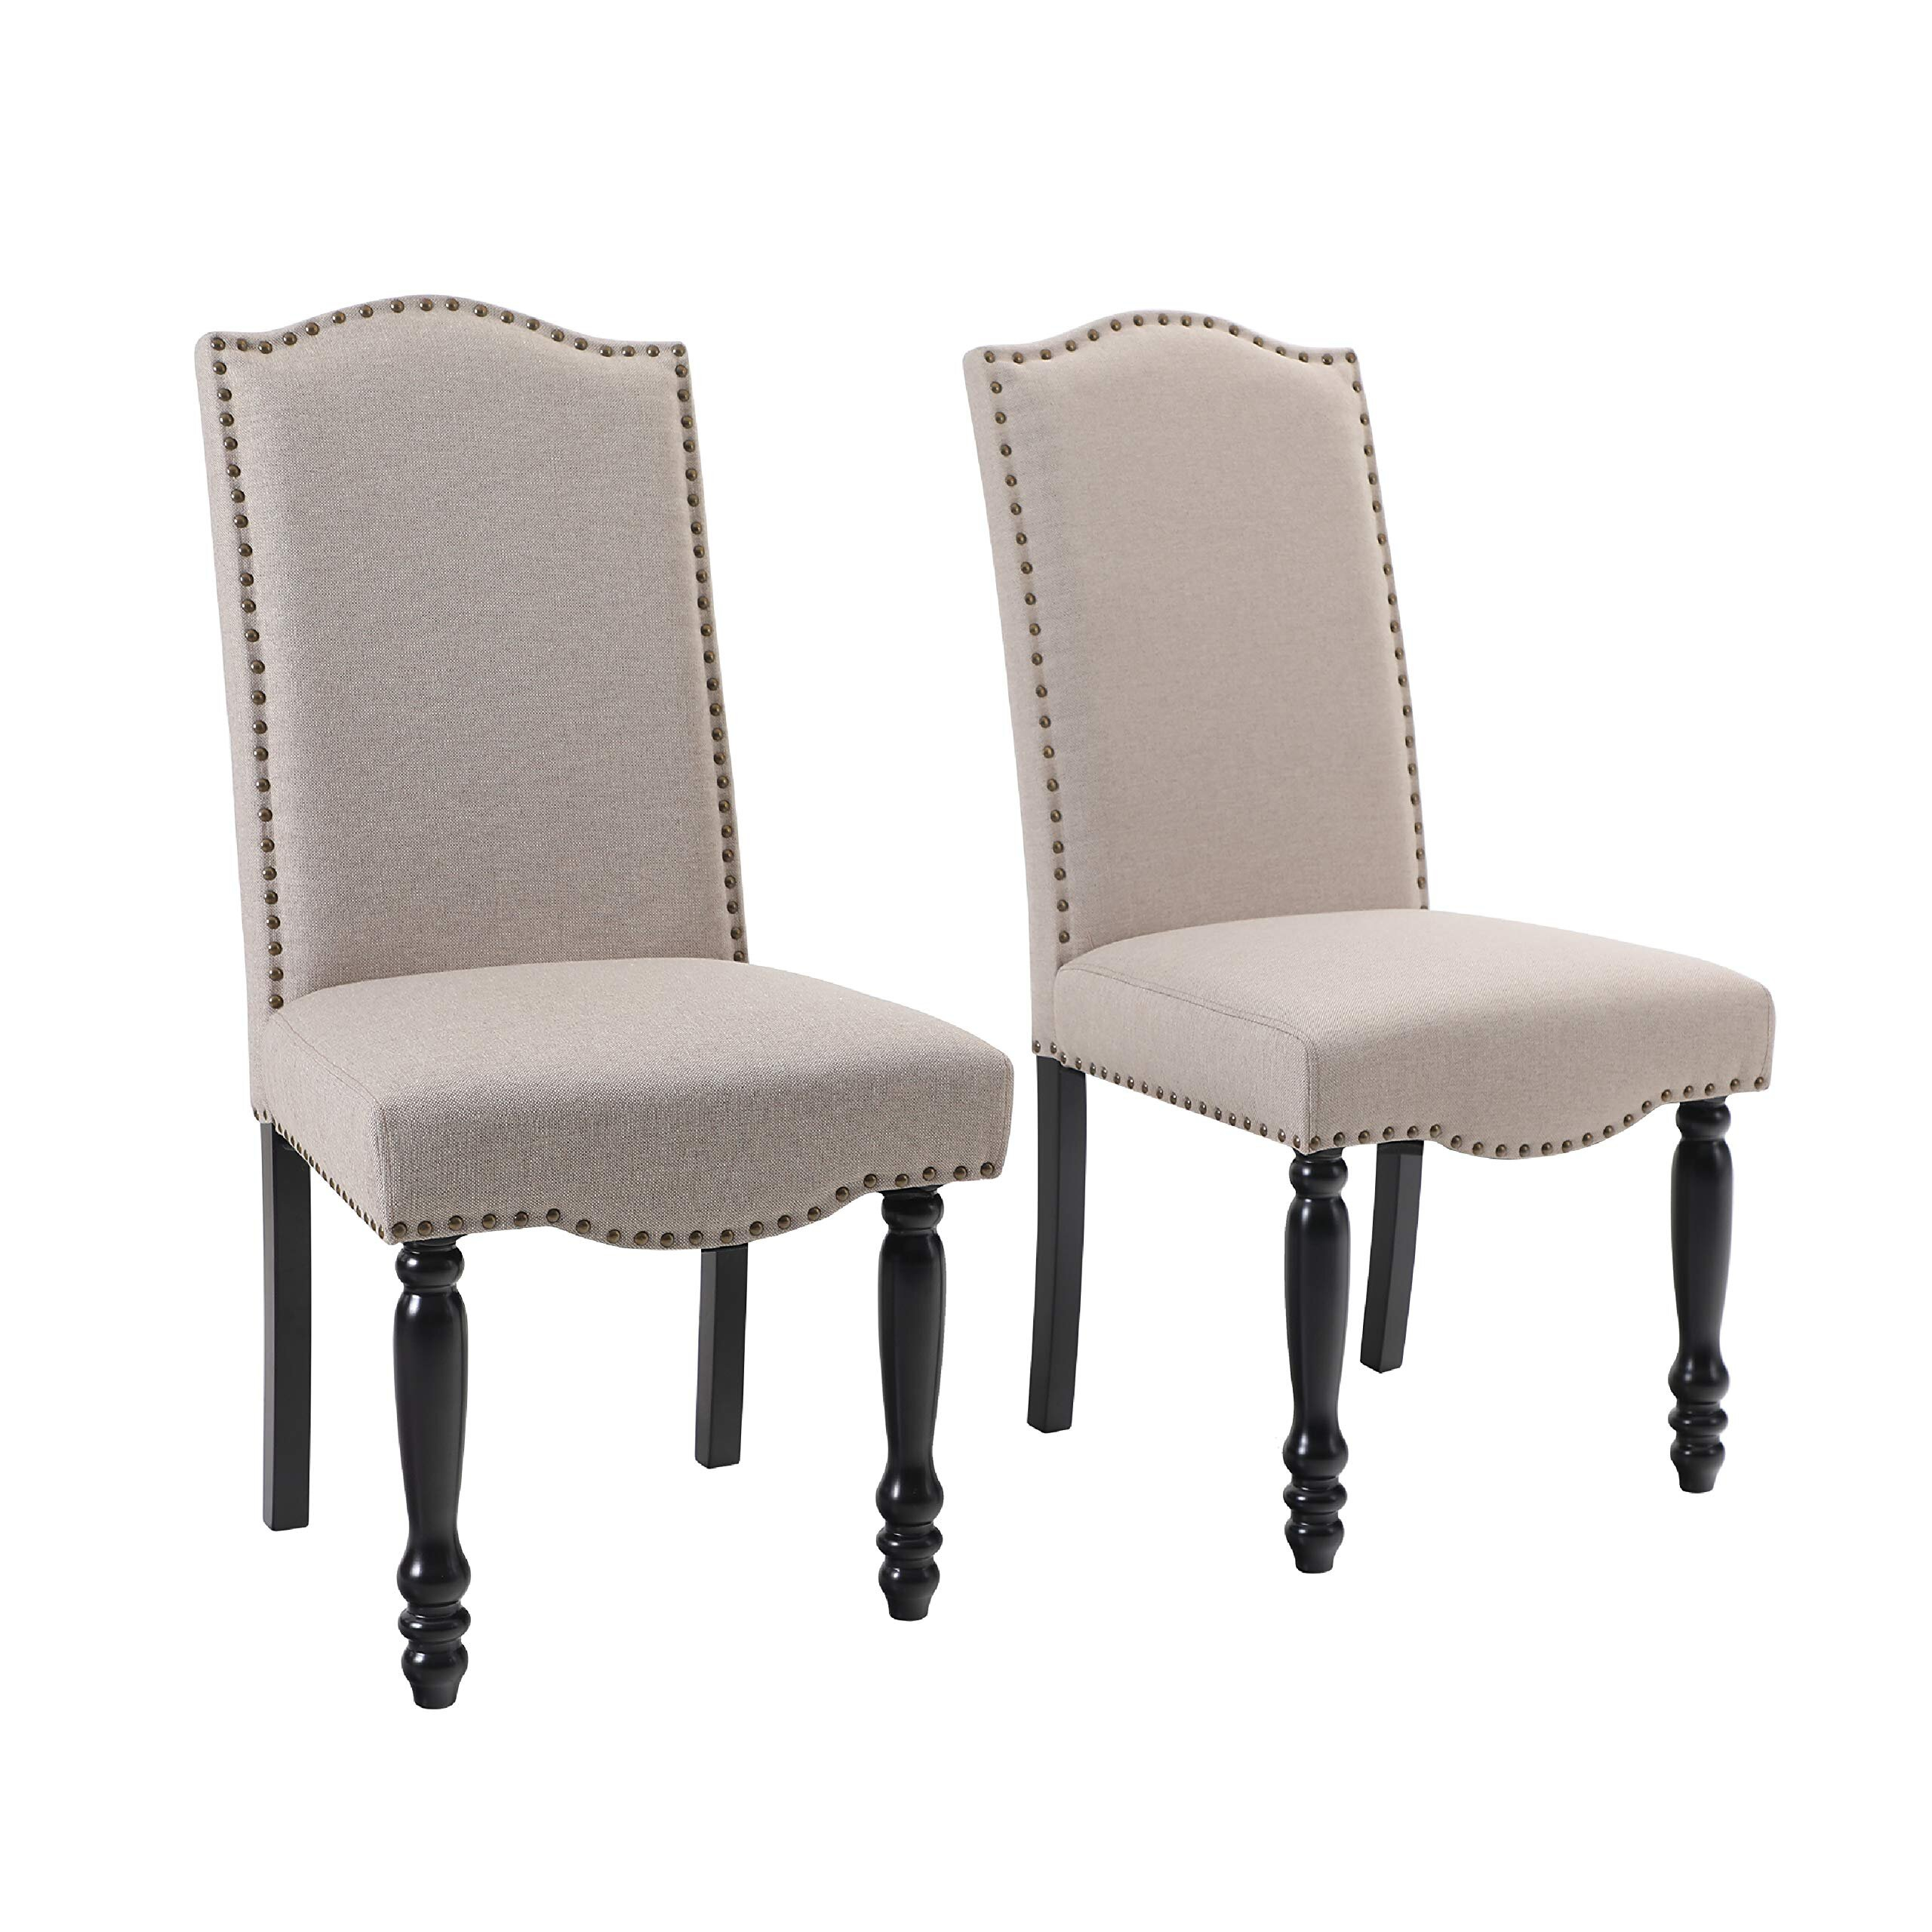 Featured Image of Madison Avenue Tufted Cotton Upholstered Dining Chairs (Set Of 2)